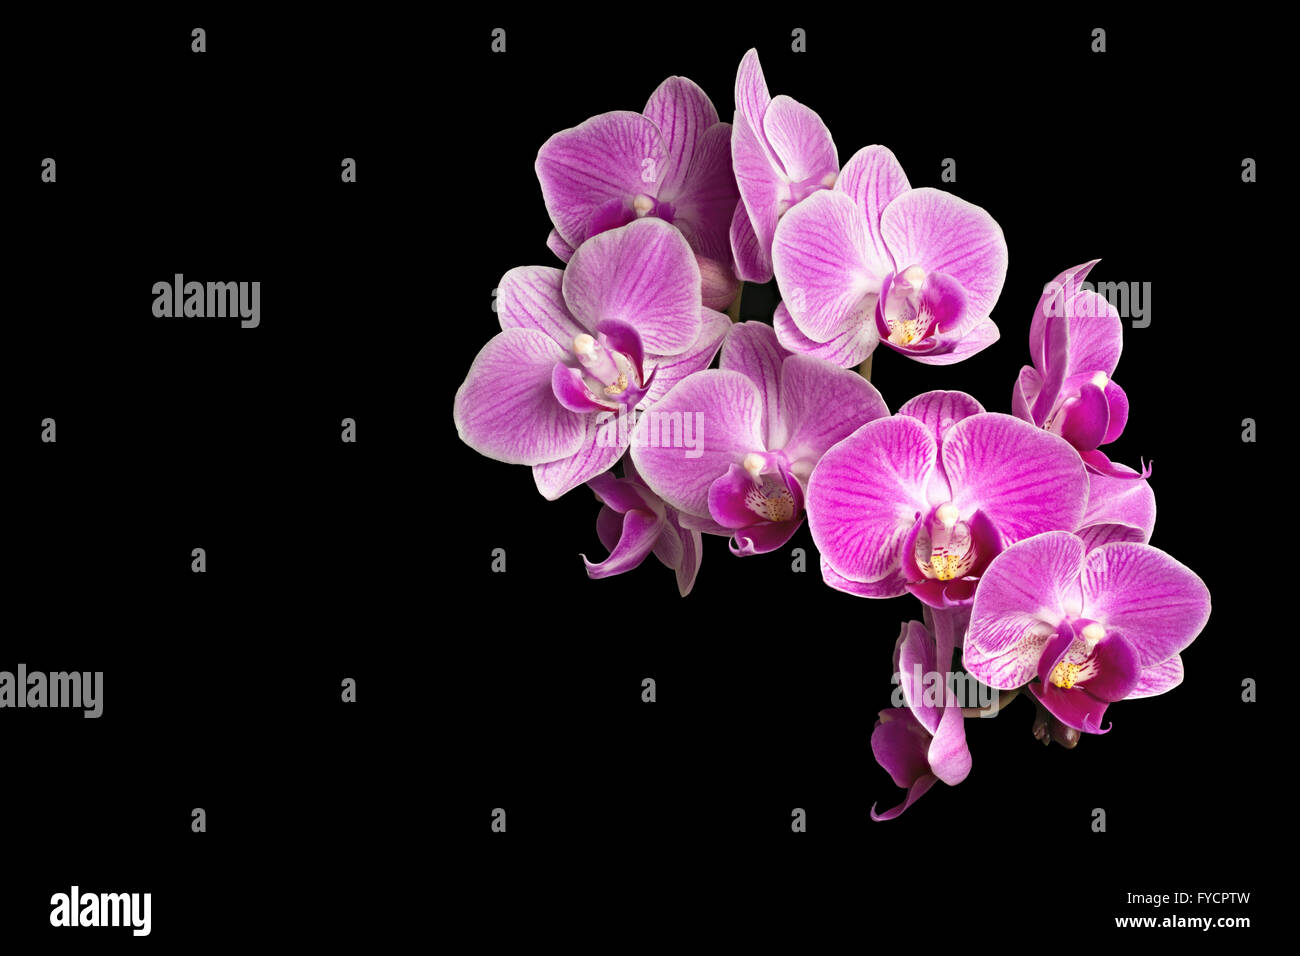 Focus Stacking Photo of Purple Orchids Isolated on Black Background - Stock Image